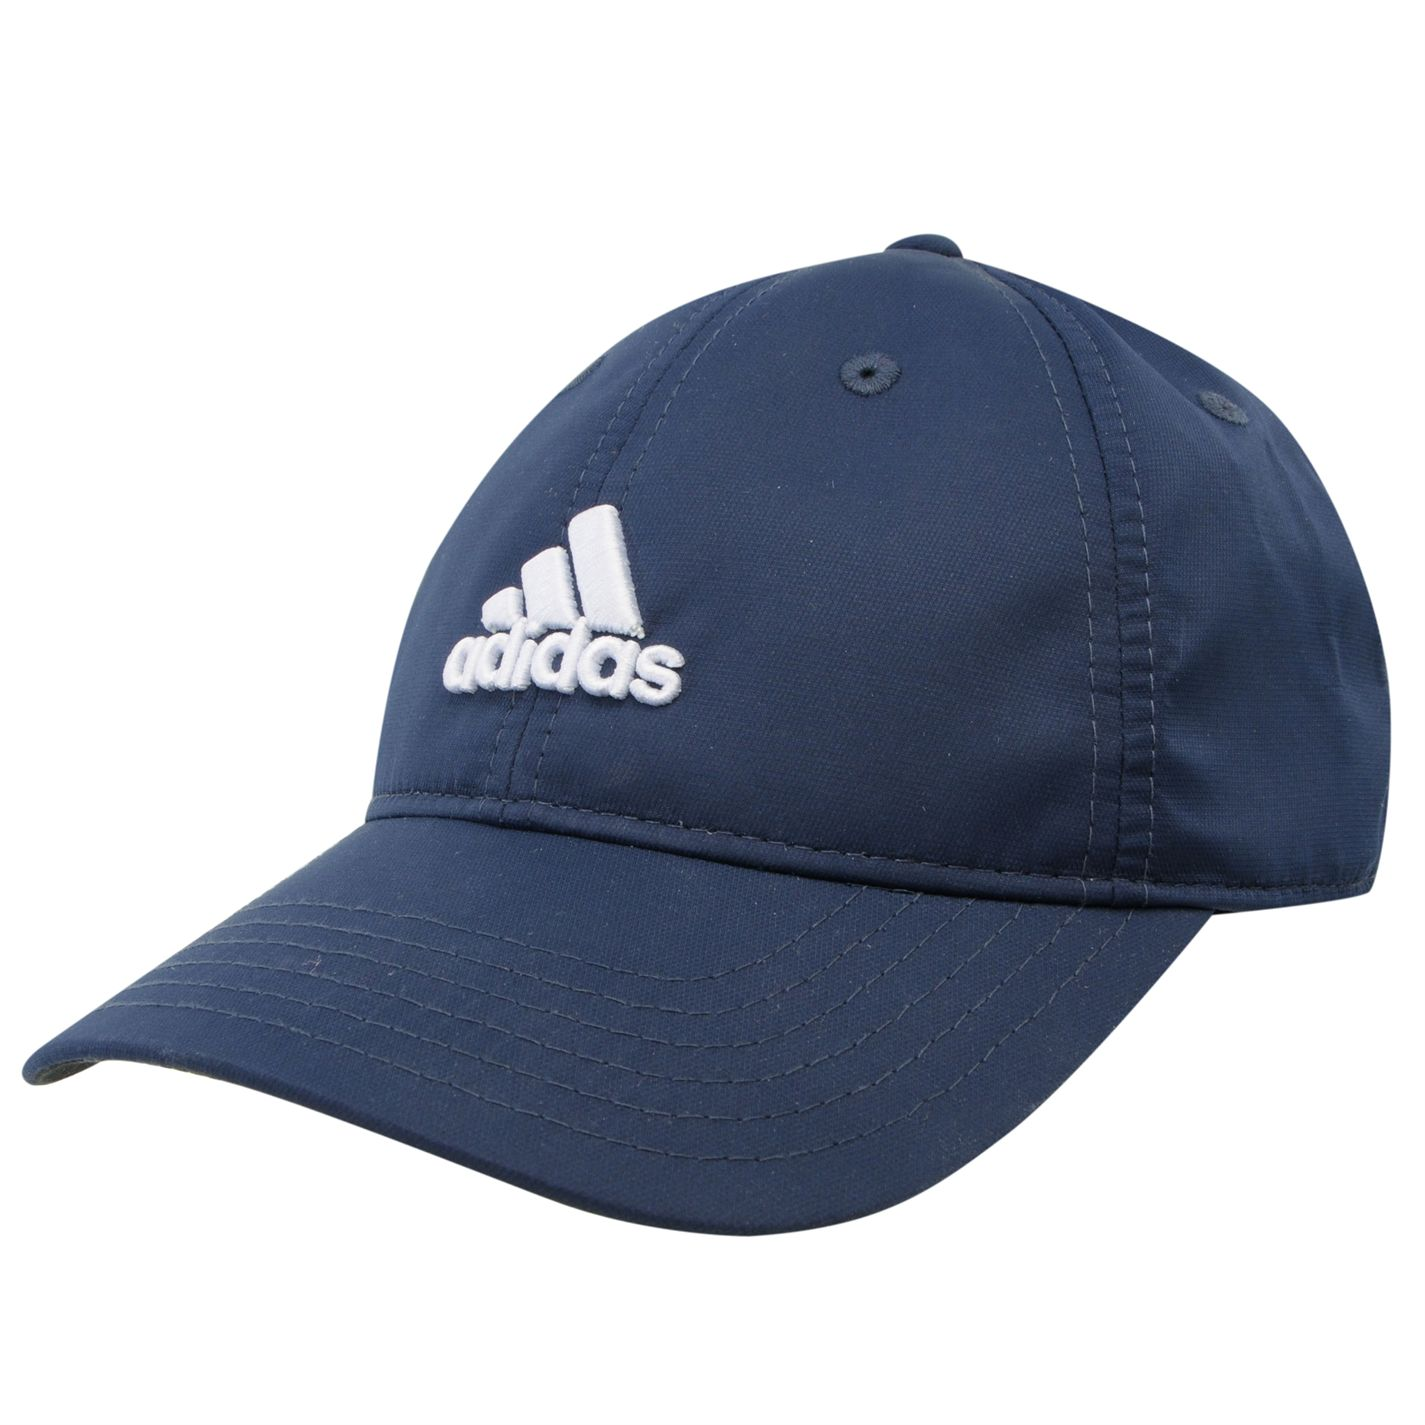 adidas Golf Cap Mens in Navy